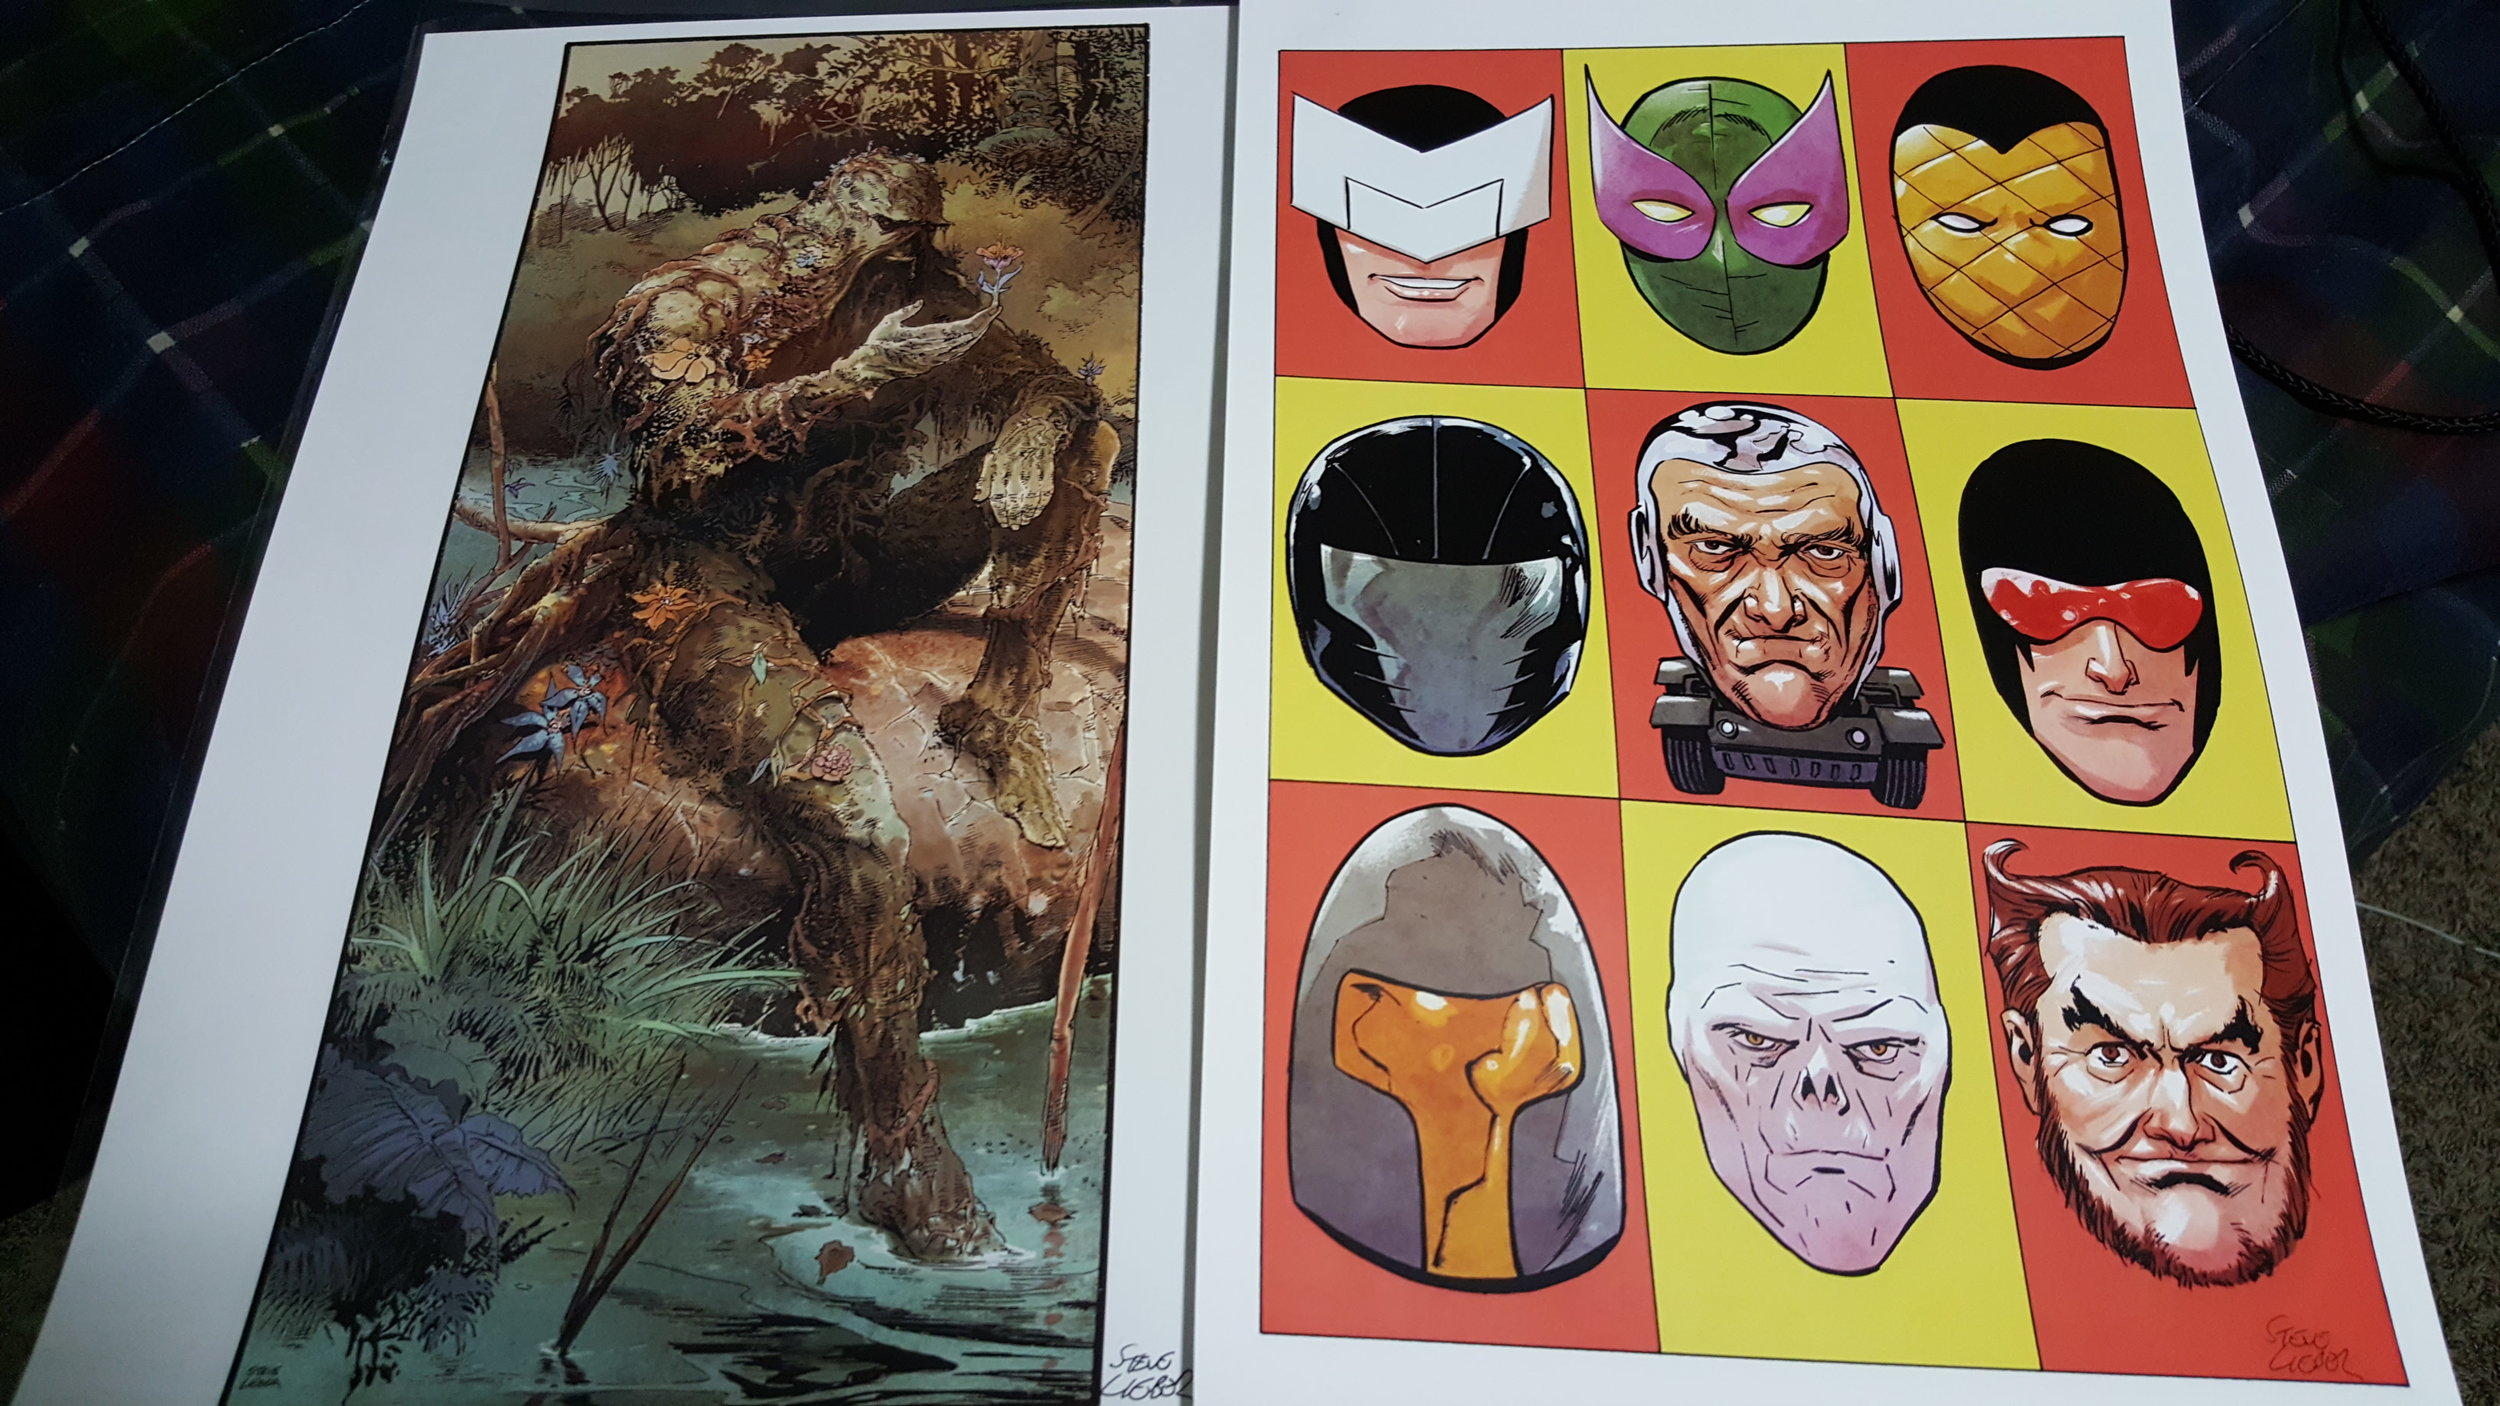 Steve Lieber's prints of Swamp Thing and Superior Foes of Spider-Man